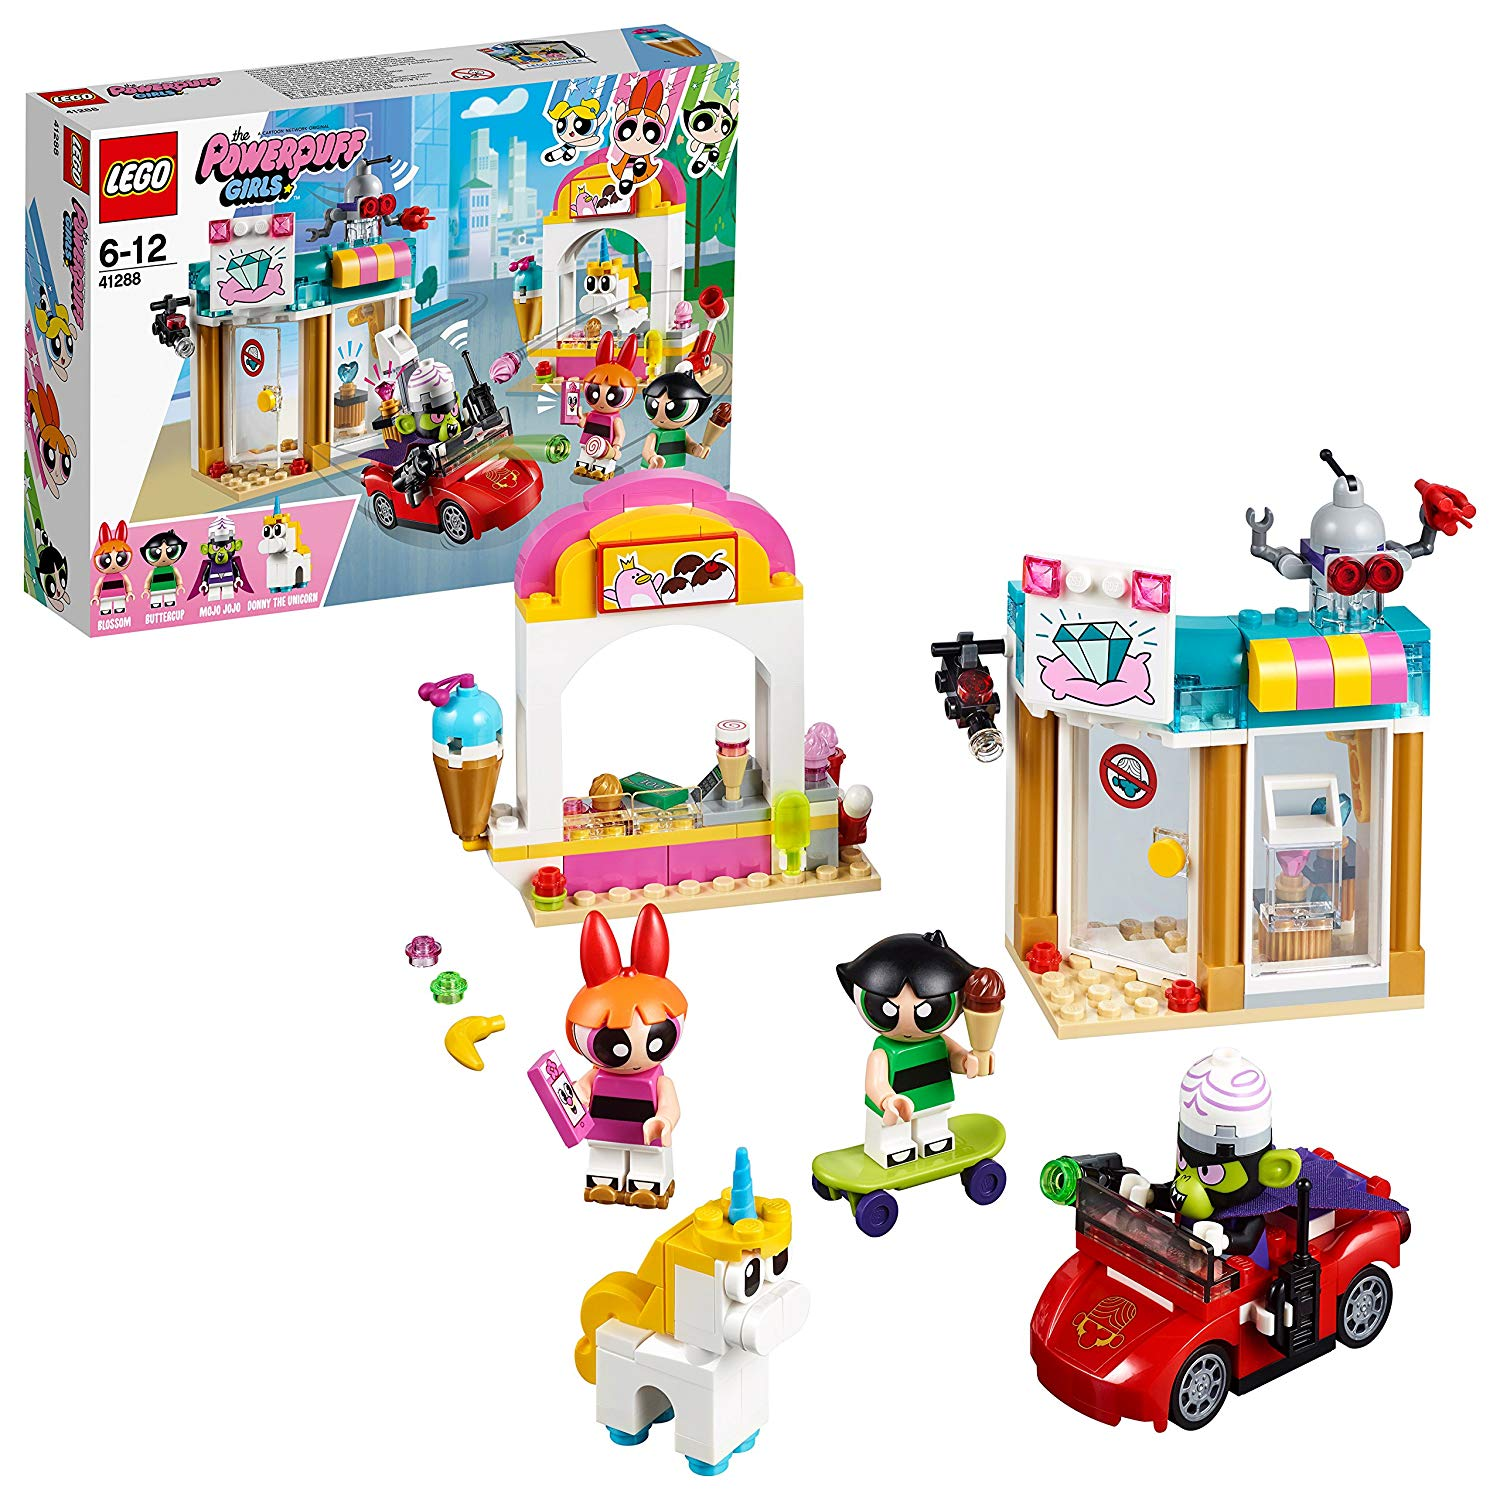 Powerpuff Girls Mojo Jojo Strikes Set by Lego -Lego - India - www.superherotoystore.com